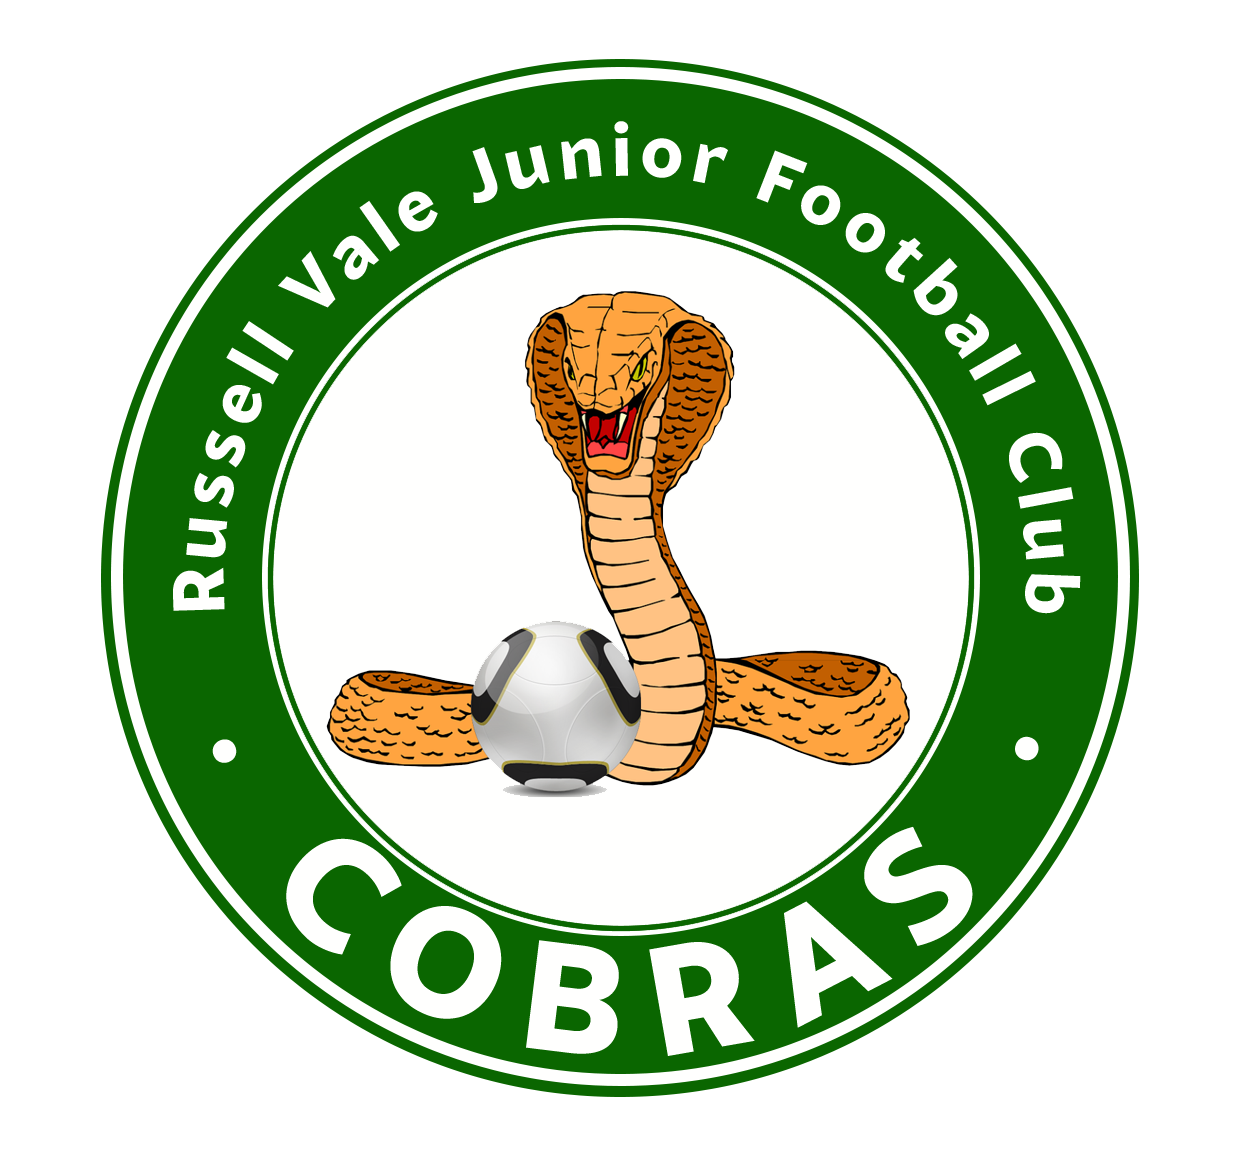 Russell Vale Junior Soccer Club